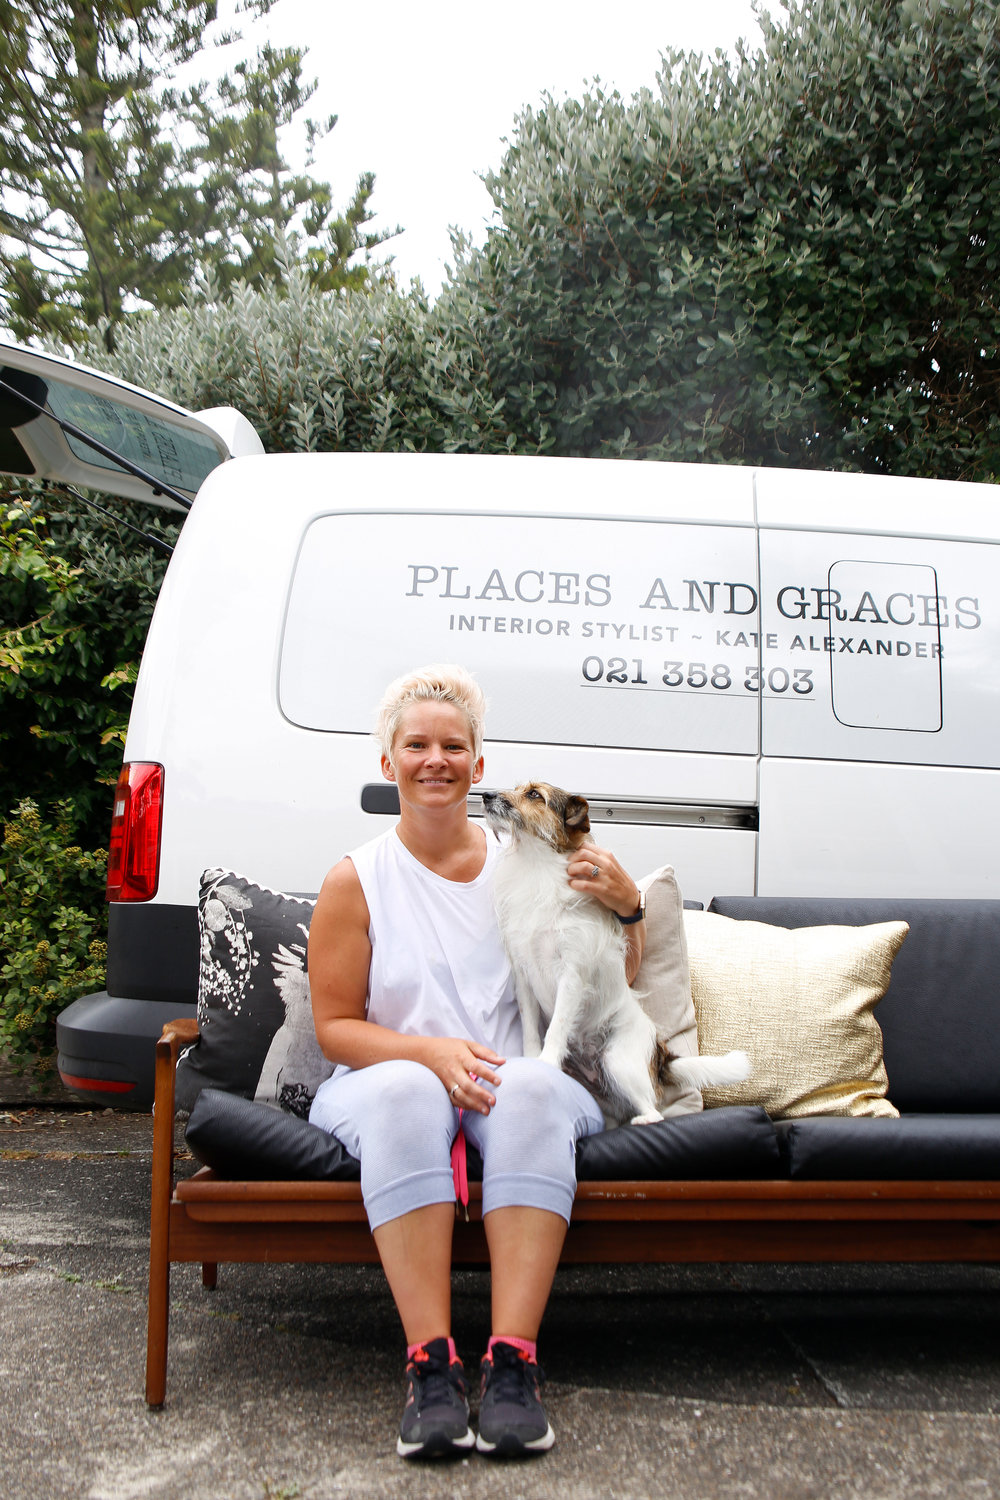 Meet the Crew - This is me, Kate. Places and Graces' head stylist. And that's Mindy my Jack Russell and favourite sidekick. Thanks to the epic team at Tristram European we cruise to work in our Caddy Crewvan. It is the absolute perfect for the life of stylist.Tristram European is a privately-owned Volkswagen and Skoda dealership on Auckland's North Shore. They provide both passenger and commercial vehicles and have a dedicated Service and Parts department. I rate their service, knowledge and genuine interest in my vehicle needs...even for a car novice like me : )Check out our Caddy Crew adventures below and follow us on instagram for more